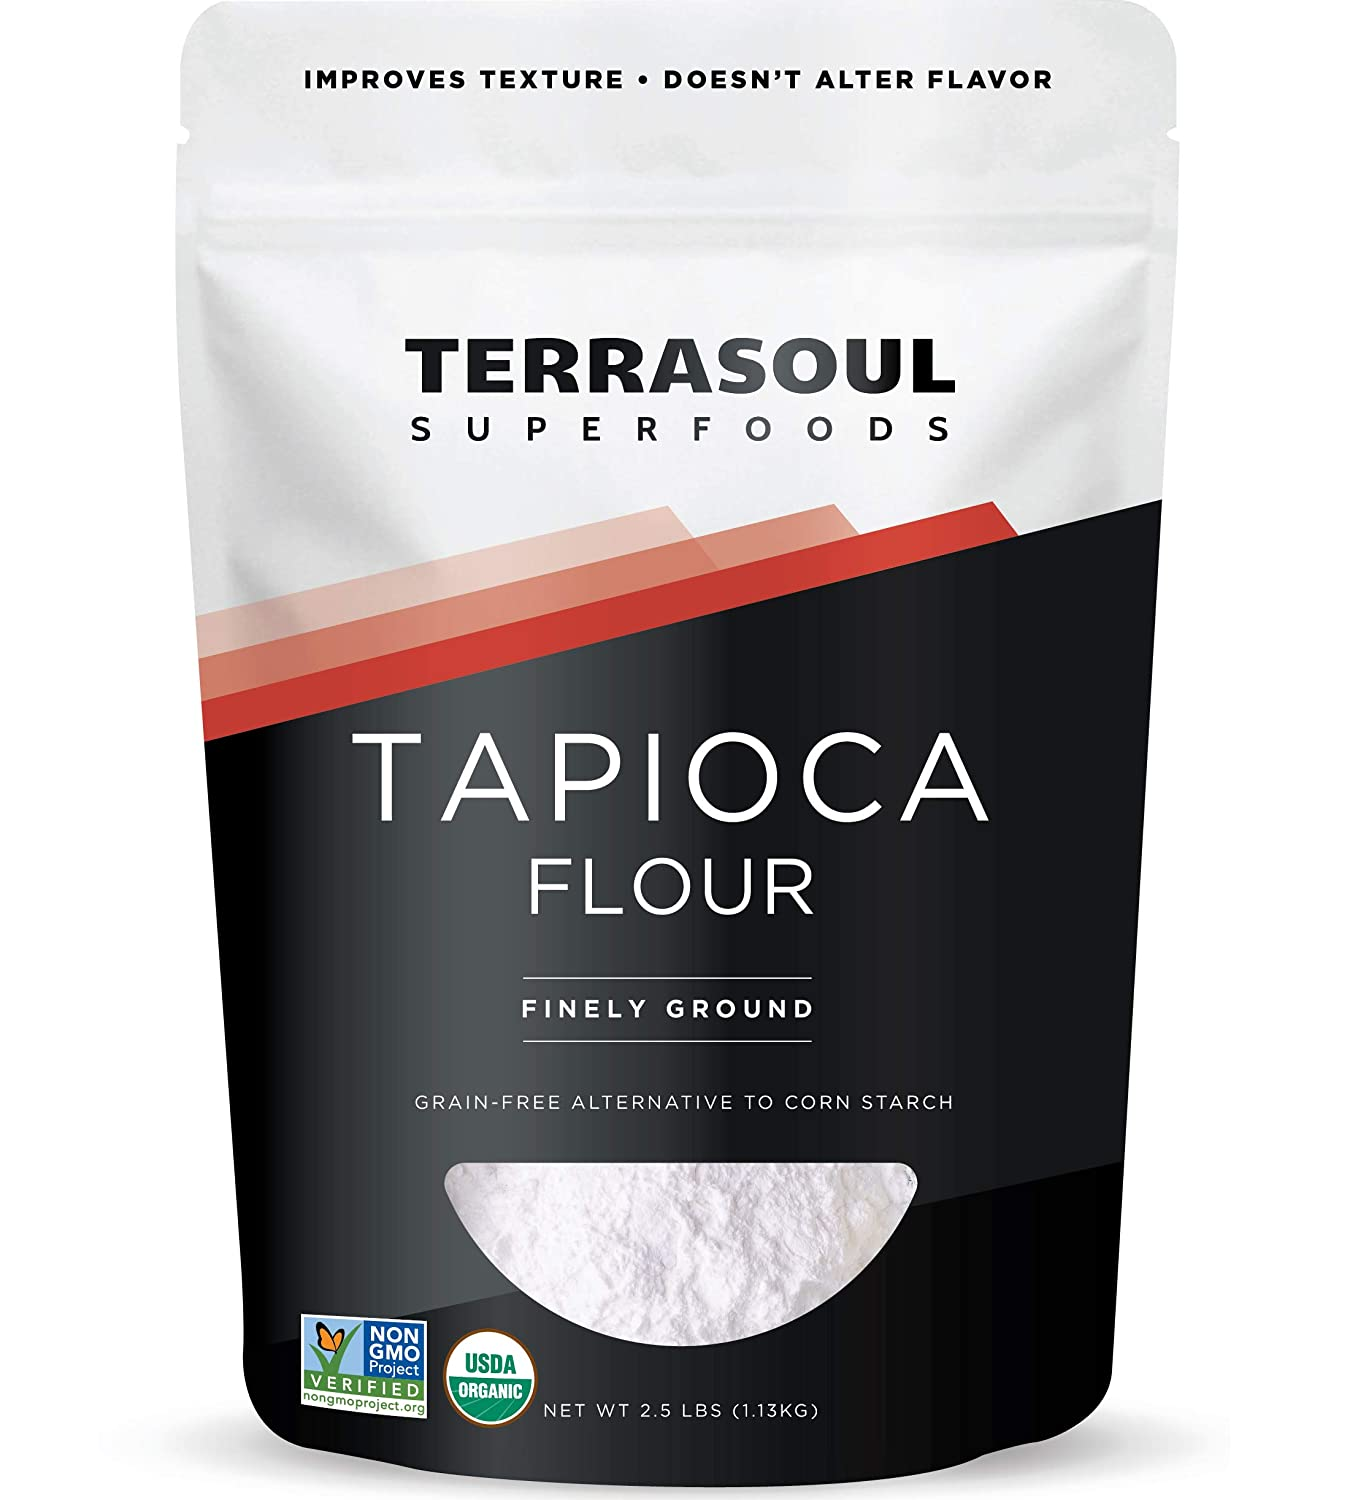 Terrasoul Superfoods Organic Tapioca Flour Starch, 2.5 Lbs - Gluten-free | Improves Texture for Keto Baking | Doesn't Alter Flavor